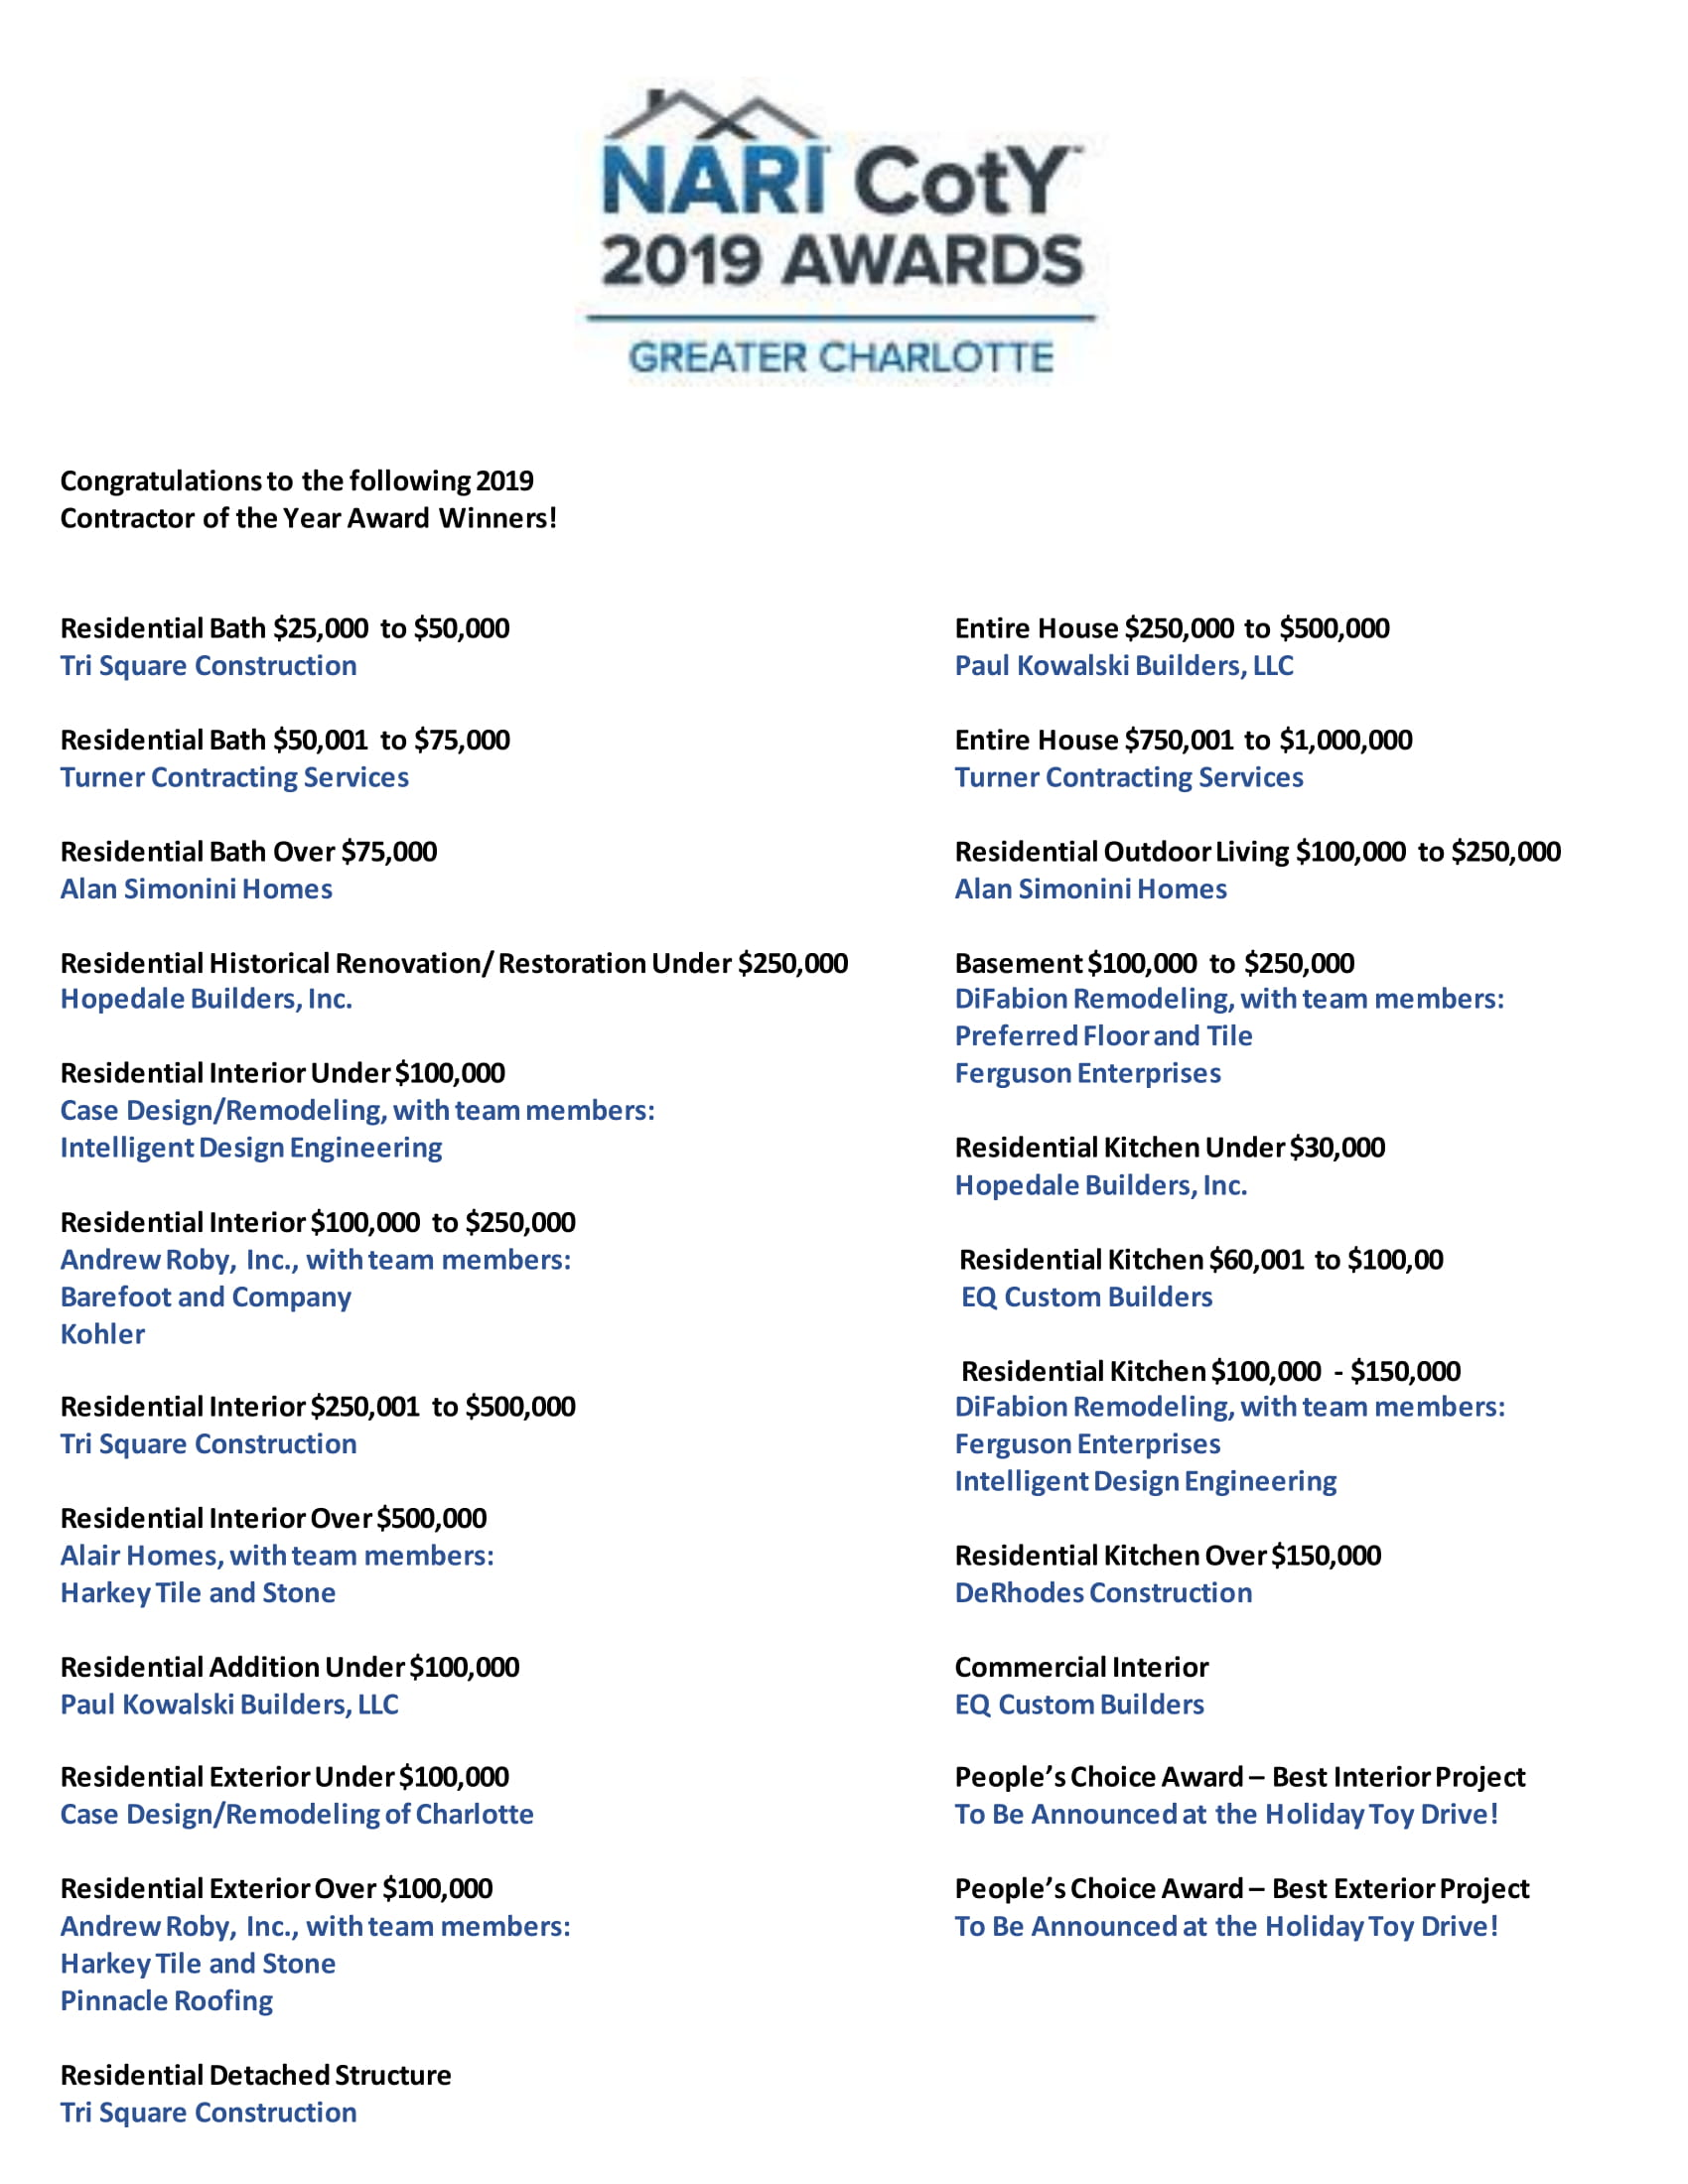 2019 COTY Award Winners By Category